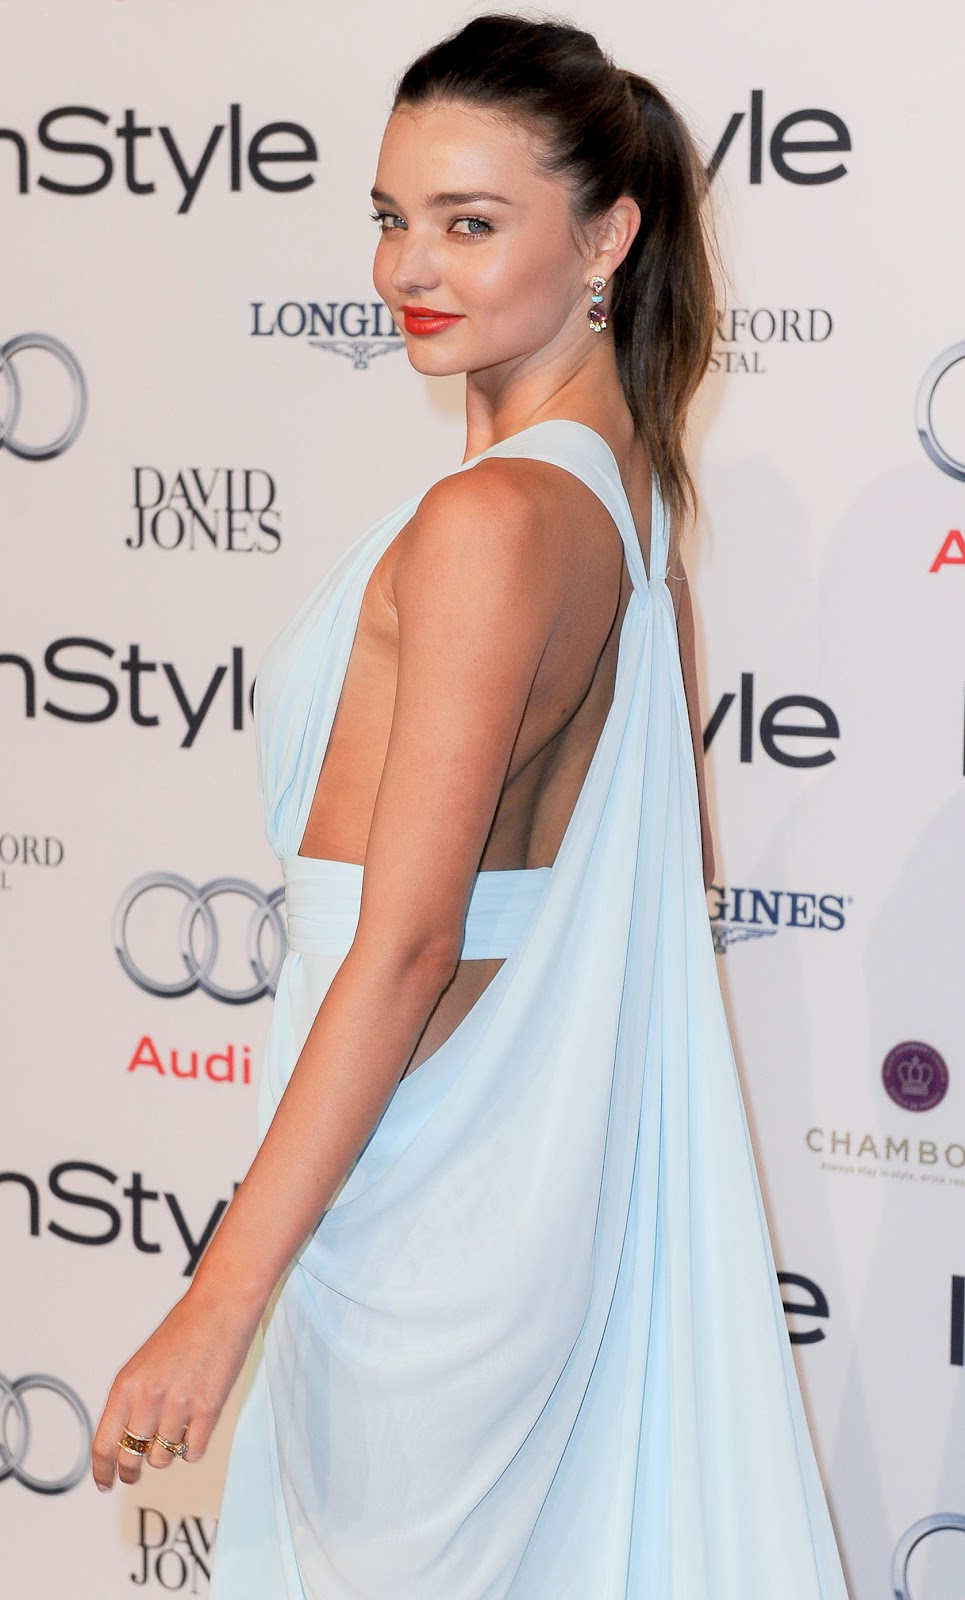 la-modella-mafia-Miranda-Kerr-in-a-goddess-like-Carla-Zampatti-white-dress-at-the-2012-Women-of-Style-Awards-red-carpet-2